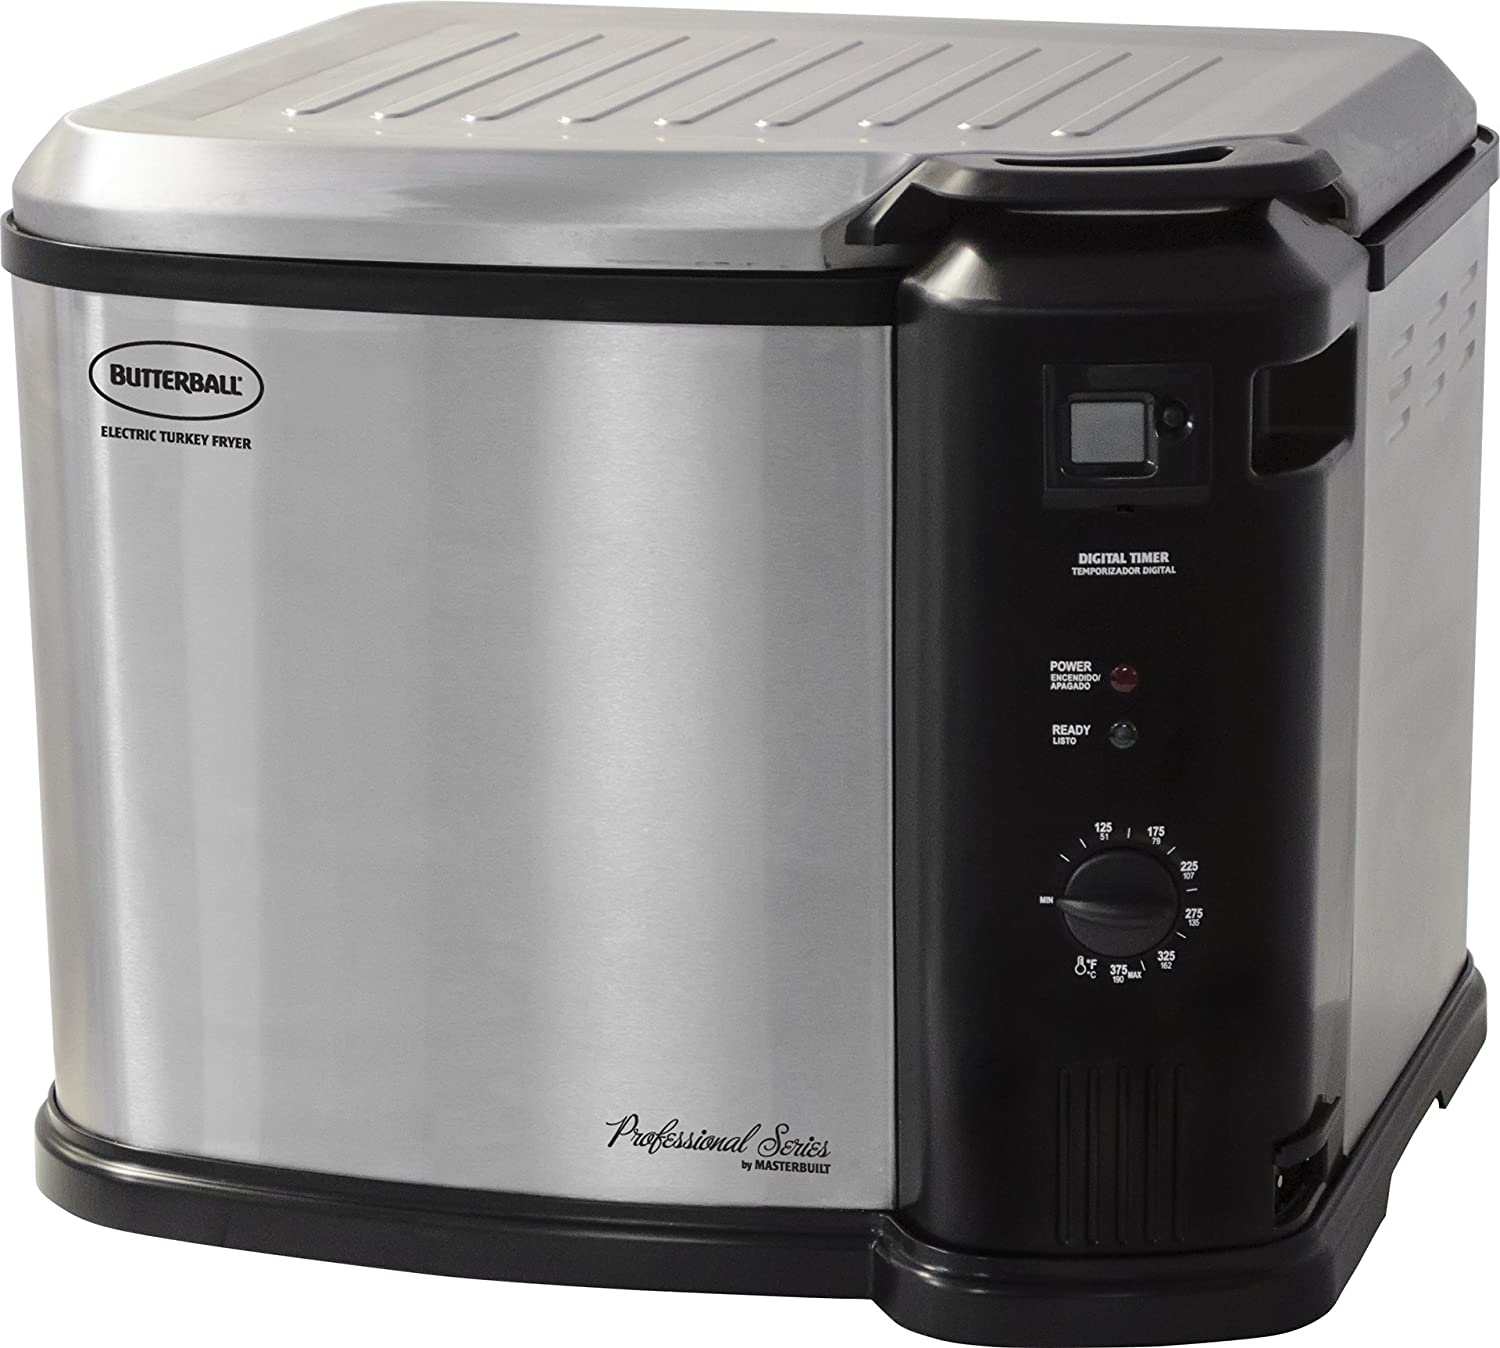 Masterbuilt 23011114 Butterball Indoor Electric Turkey Fryer, XL